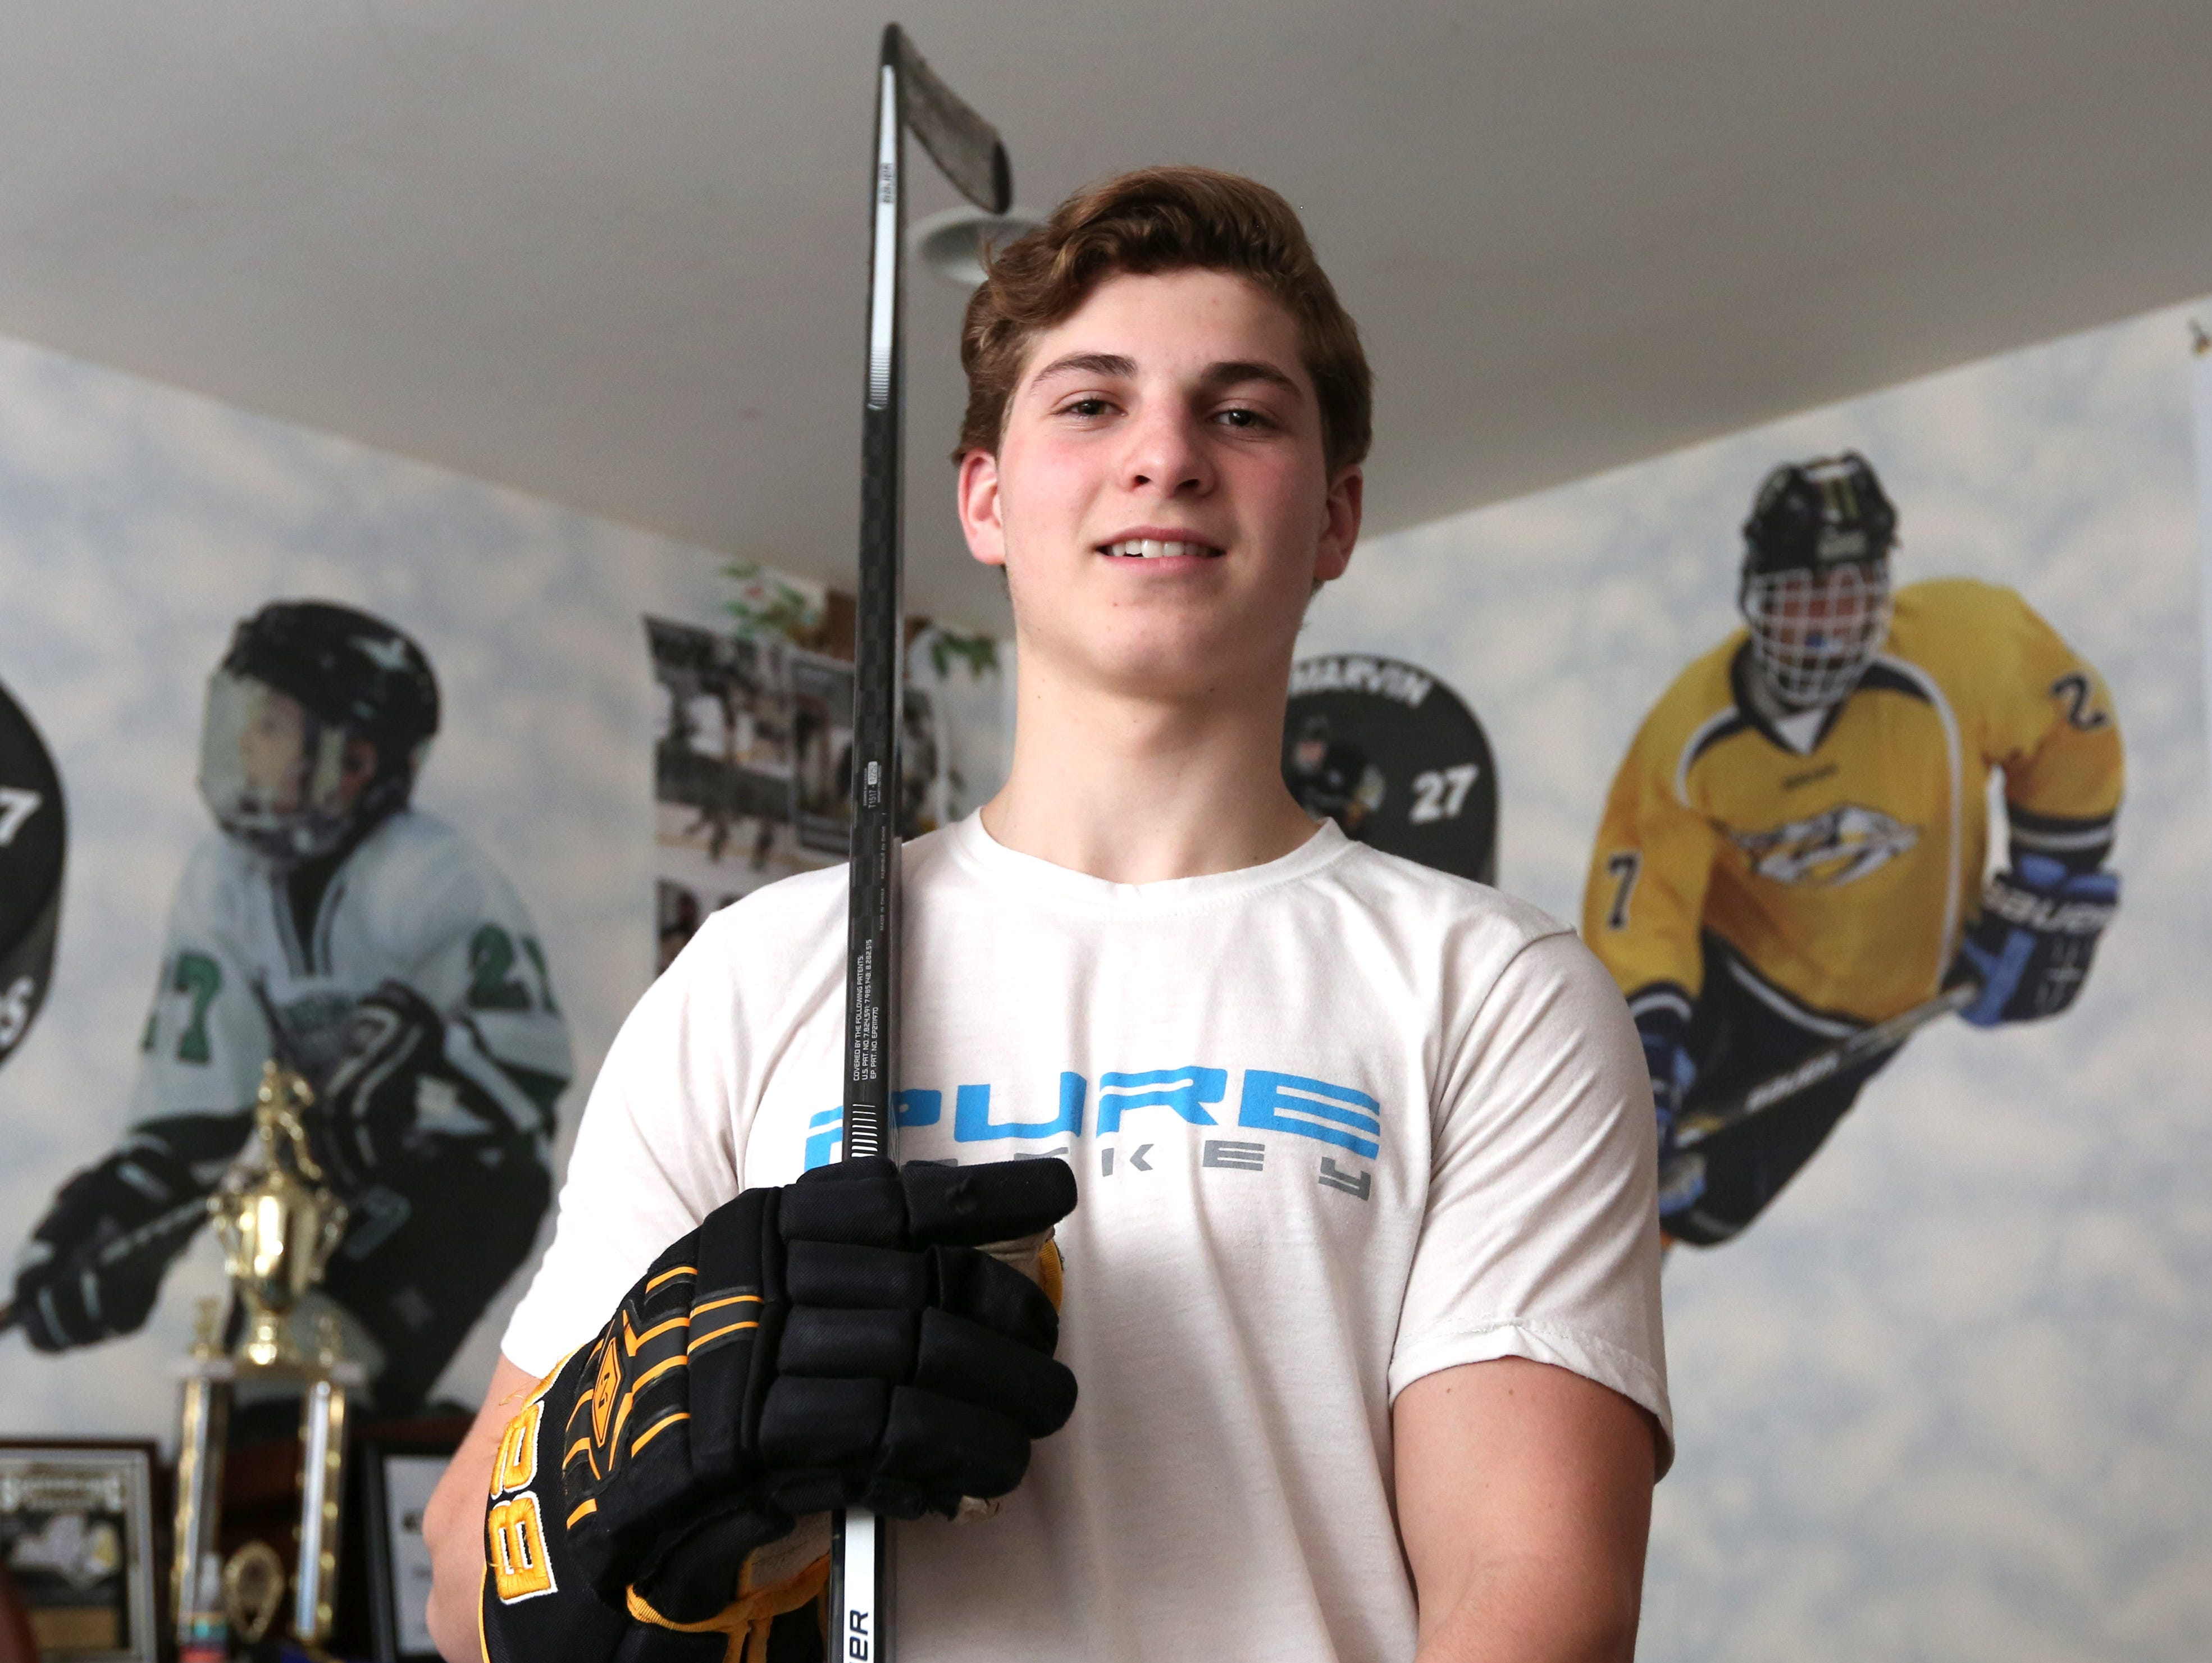 Rockland hockey player of the year, Clarkstown's Adam Marvin April 1, 2016.